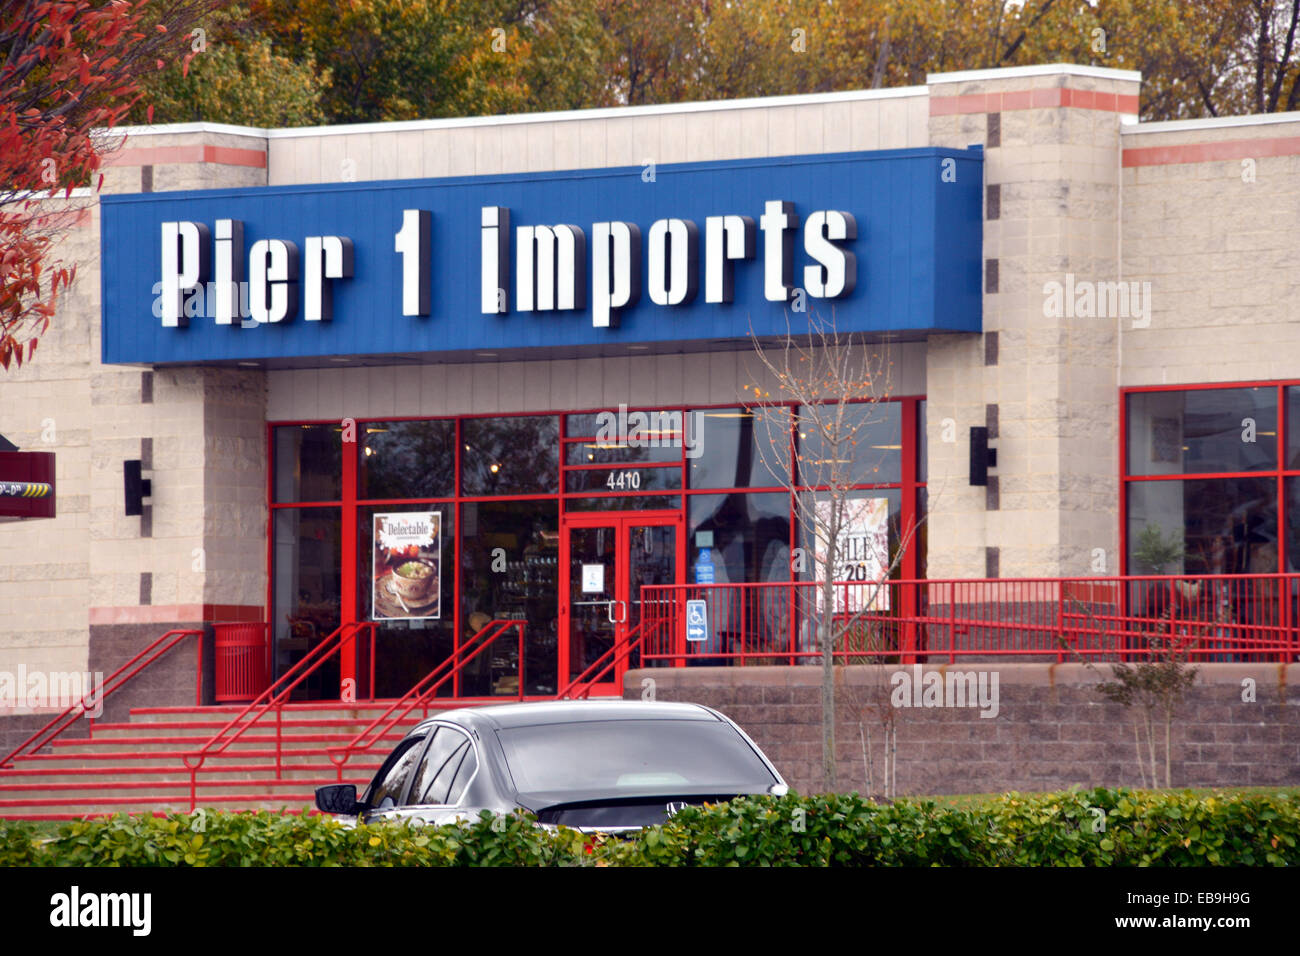 Piier 1 Imports store in Bowie, Maryland - Stock Image